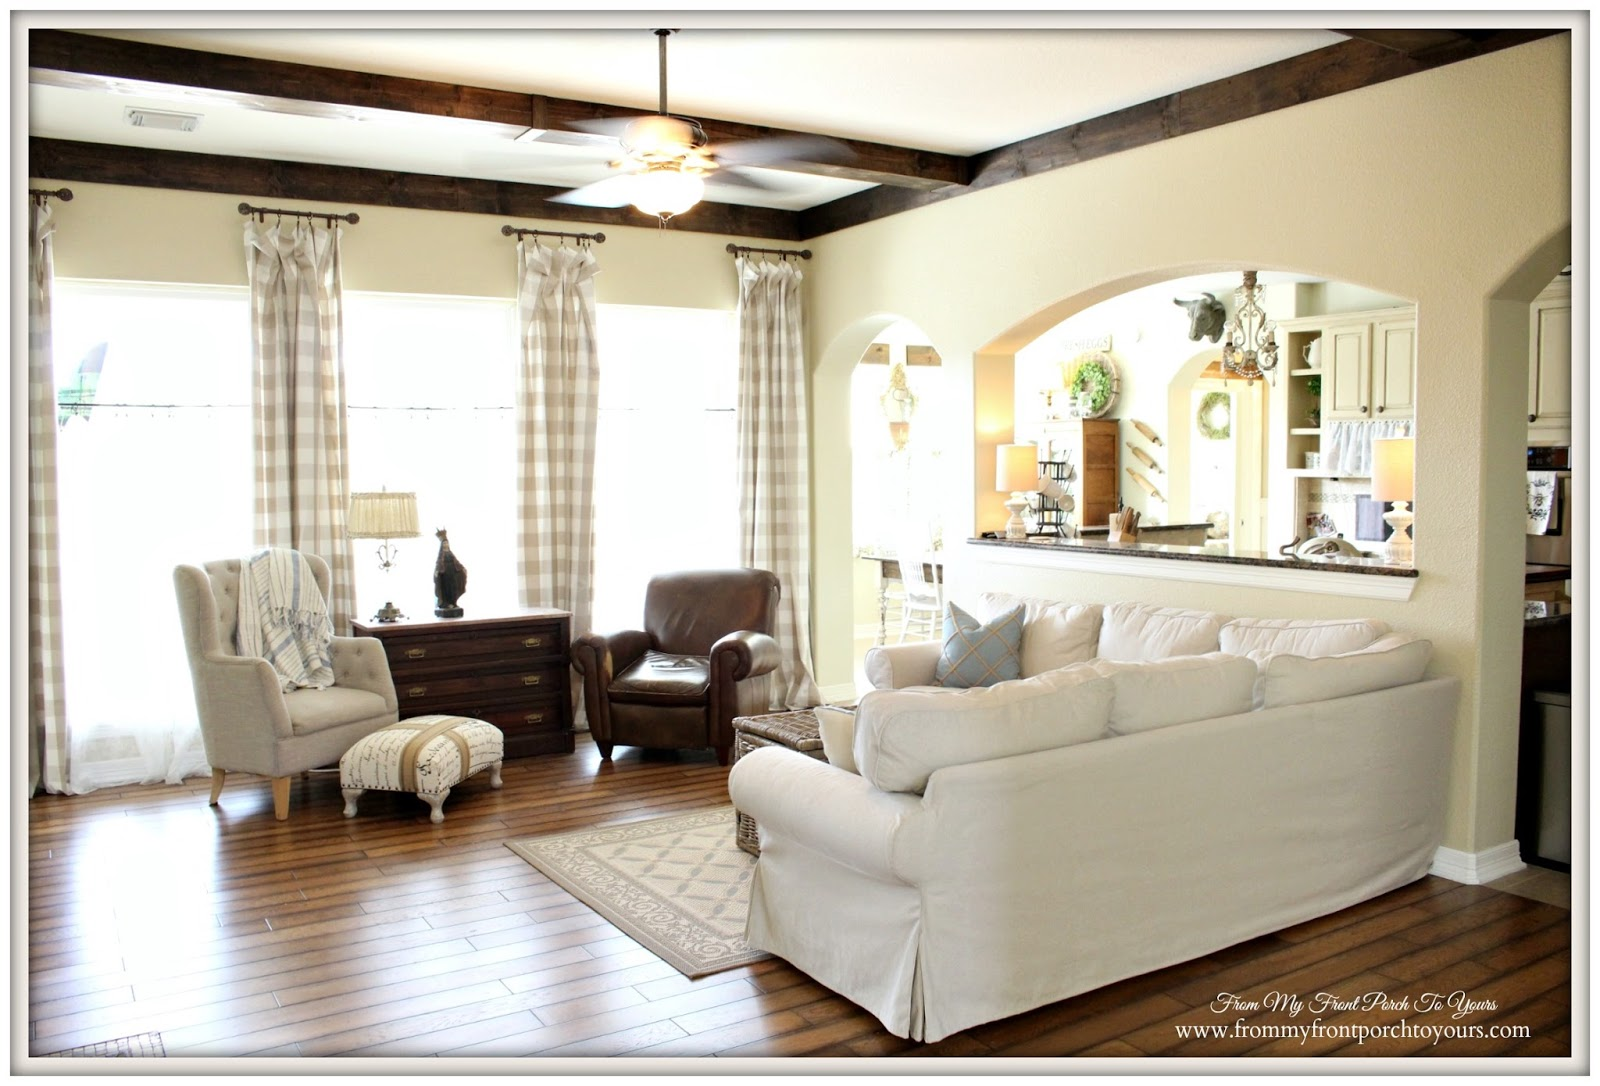 from my front porch to yours: farmhouse living room with ektorp sofa